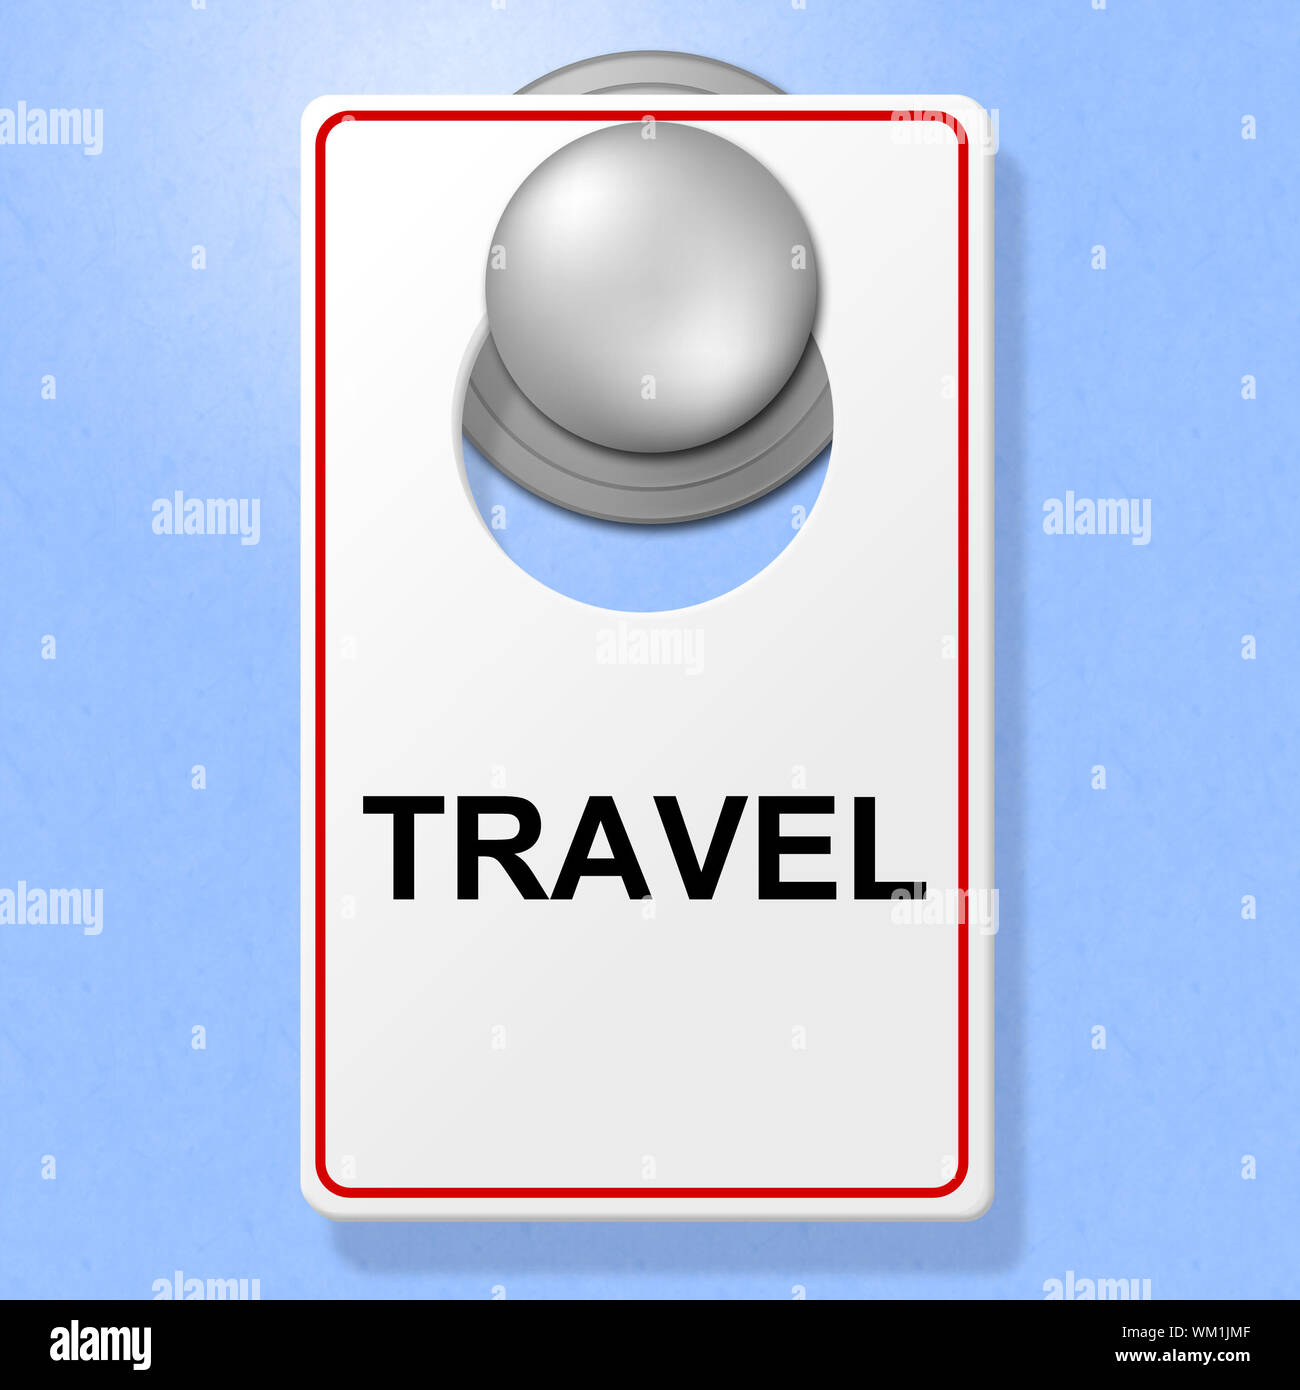 Travel Sign Showing Go On Leave And Time Off Stock Photo